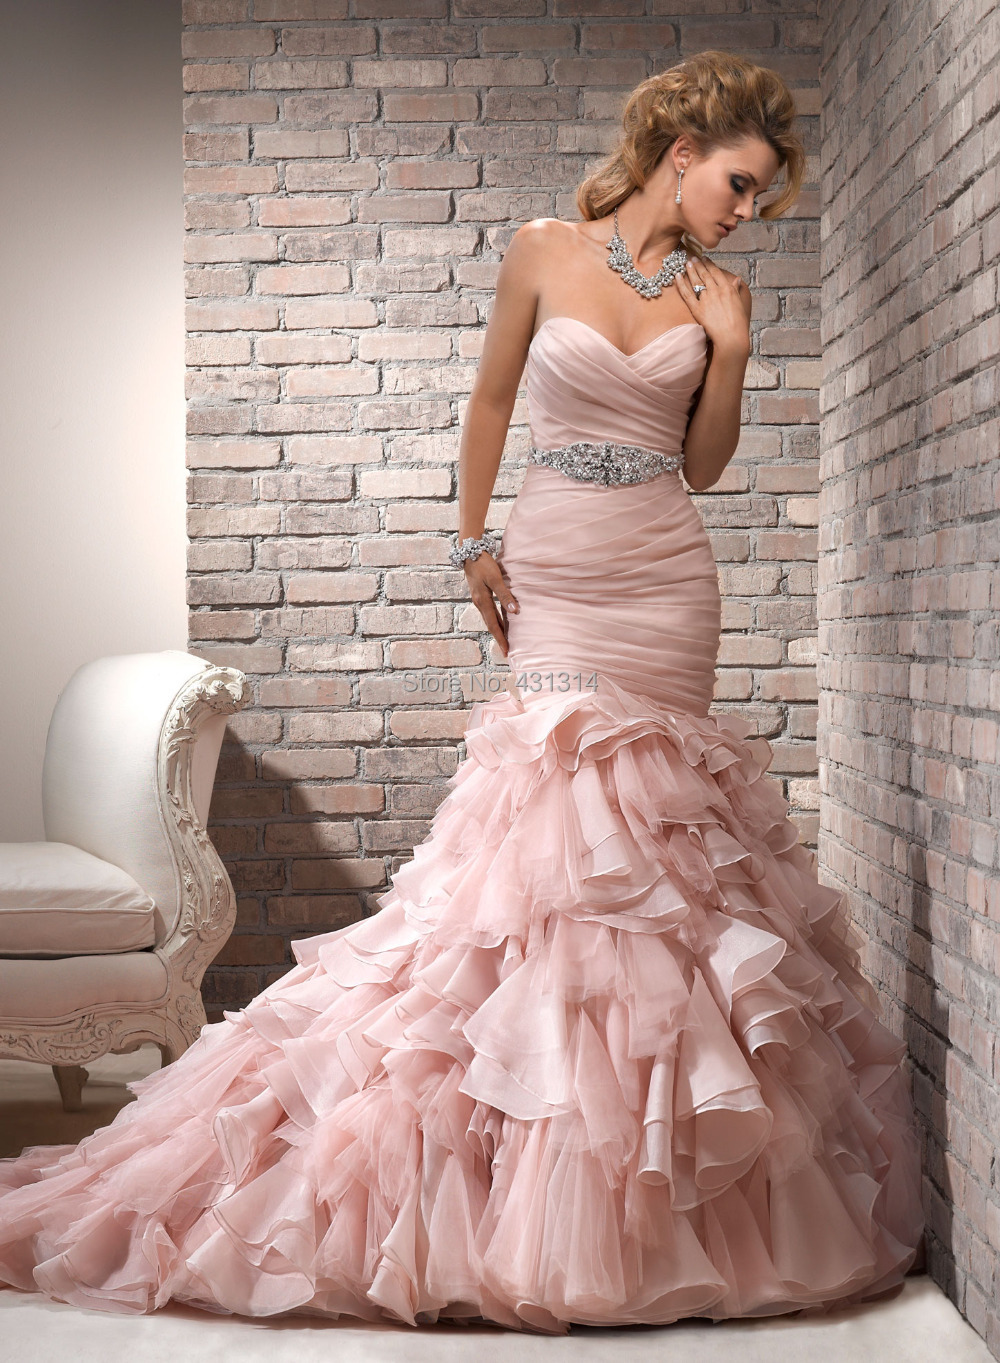 New Gorgeous Charming Mermaid Pink Organza Bridal Gown Beaded Natural Waistline Wedding Dresses Custom Size - Boutique dress's store